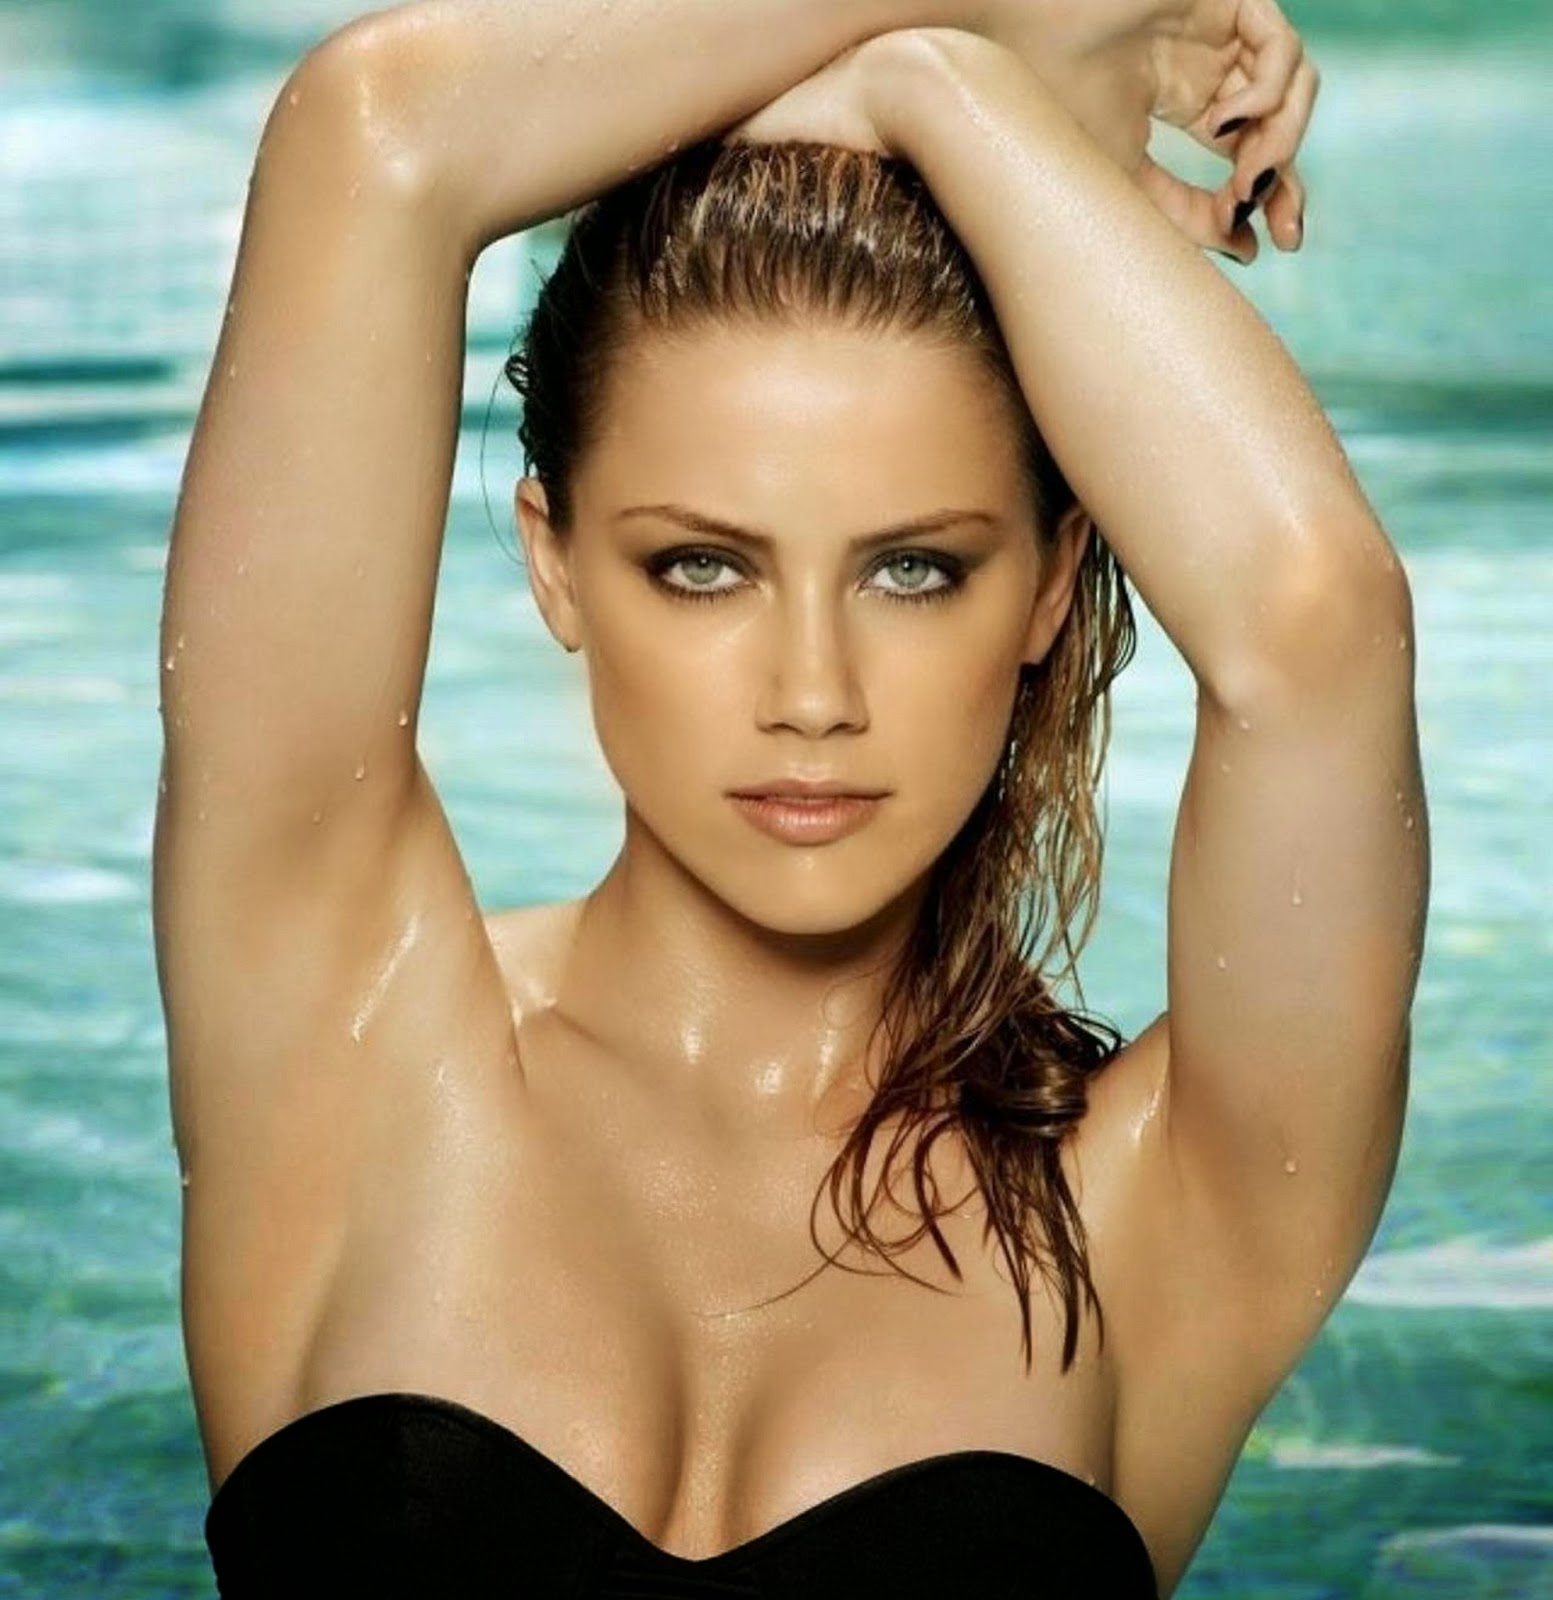 Hollywood Actress Wallpaper: Amber Heard Wallpapers